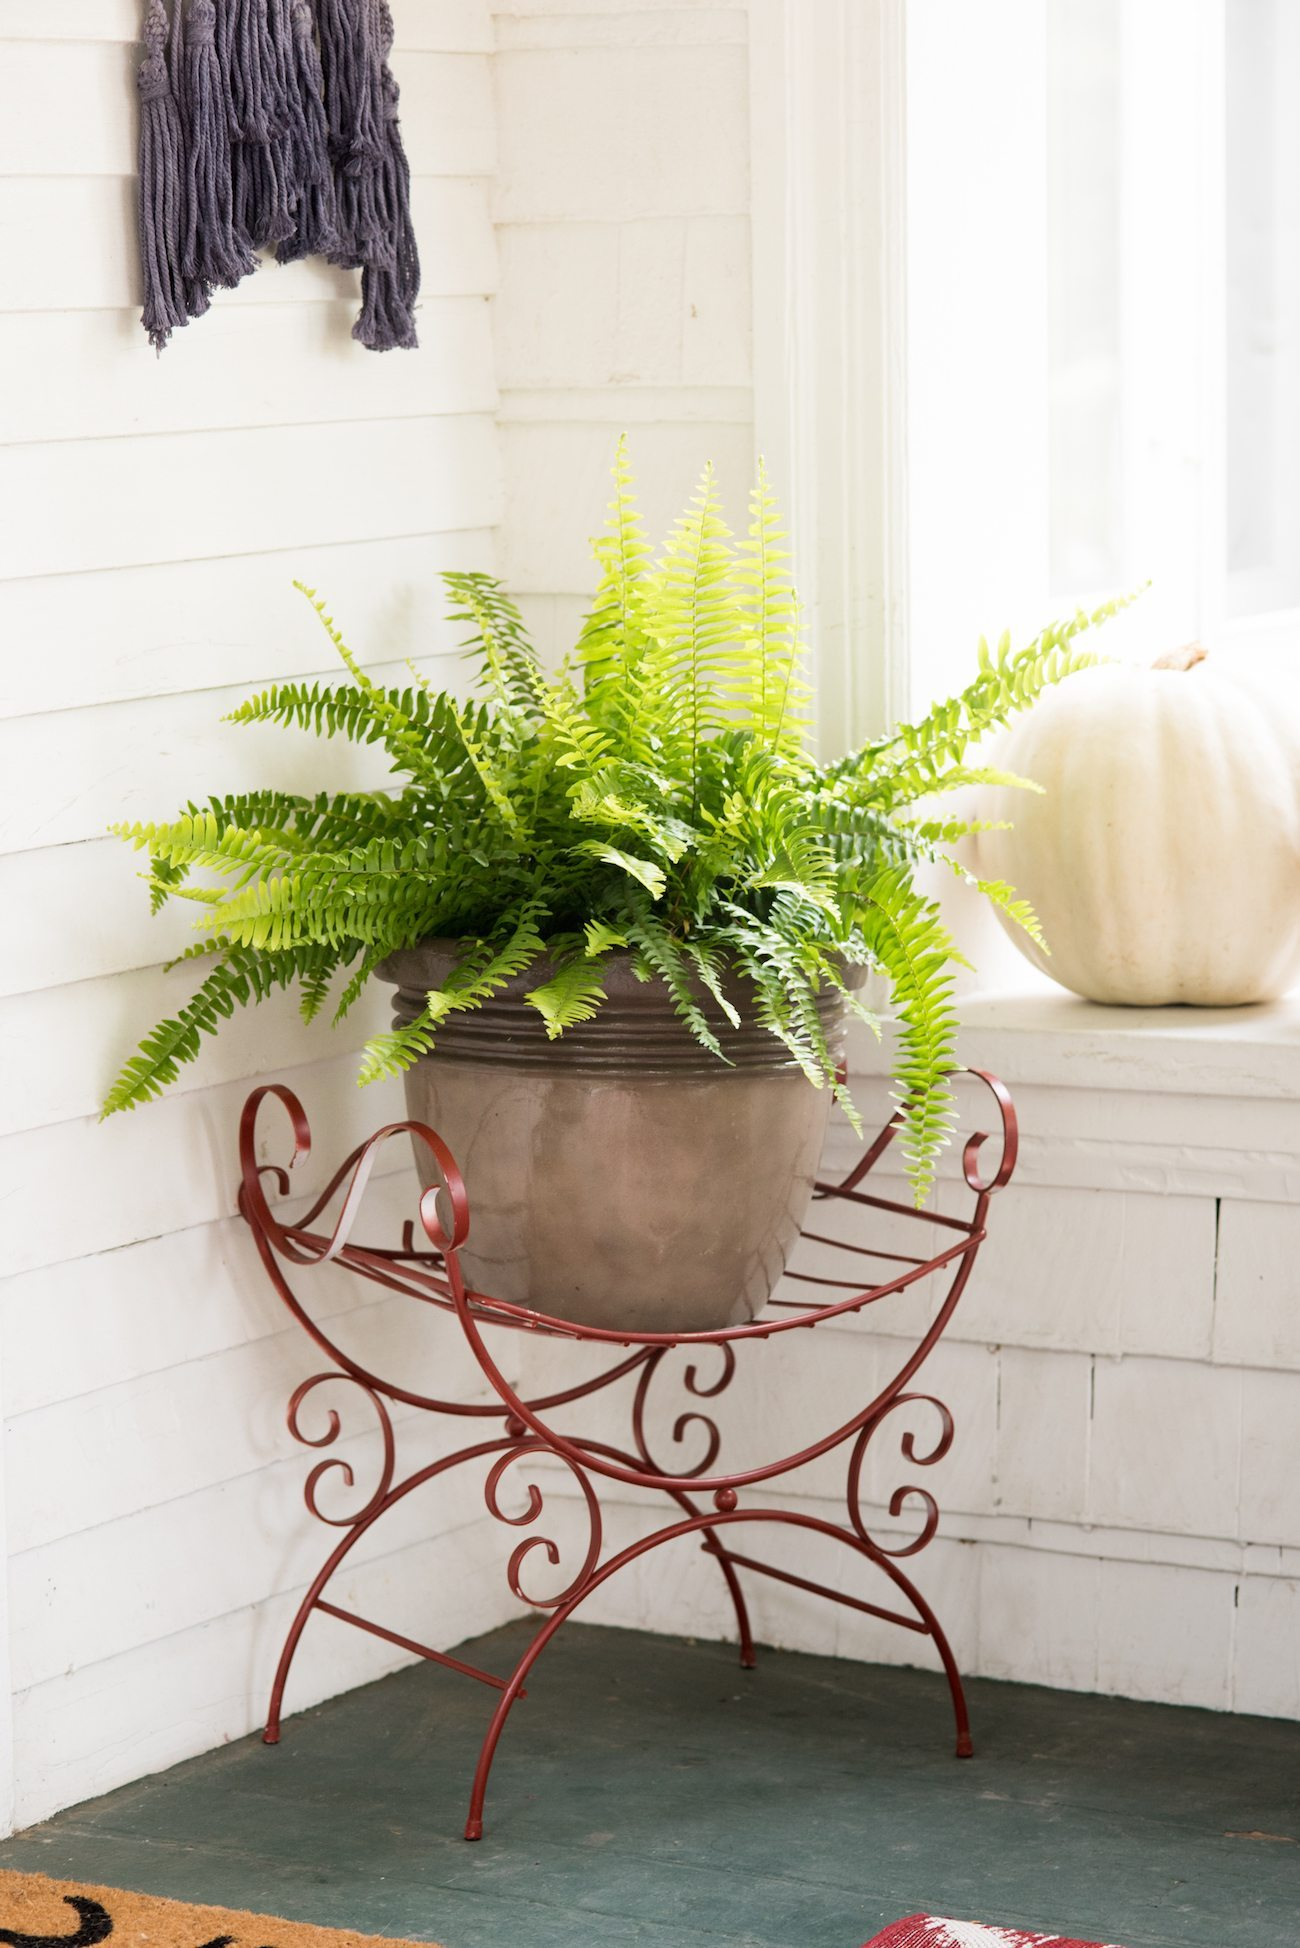 Our Fall Front Porch Decor | Fall decorating ideas, entertaining tips, party ideas and more from @cydconverse